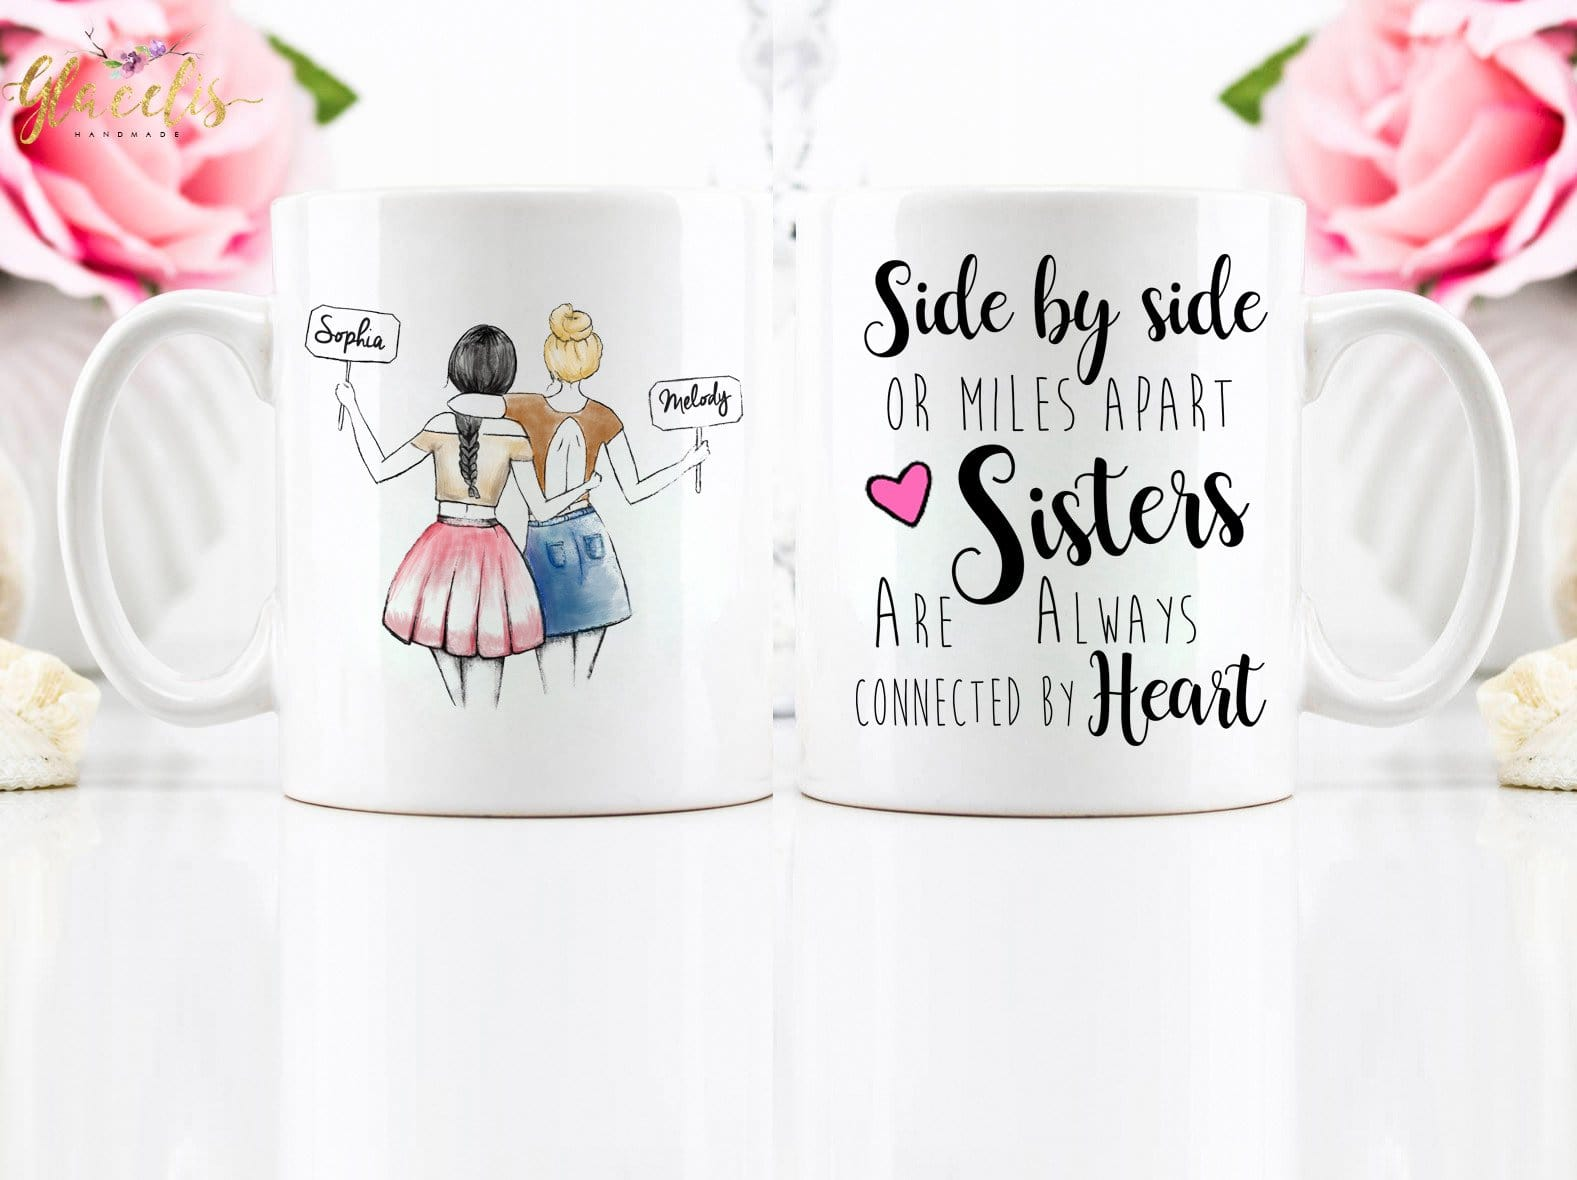 Gifts for Best Friends | Gift Ideas for Friends | Glacelis.com